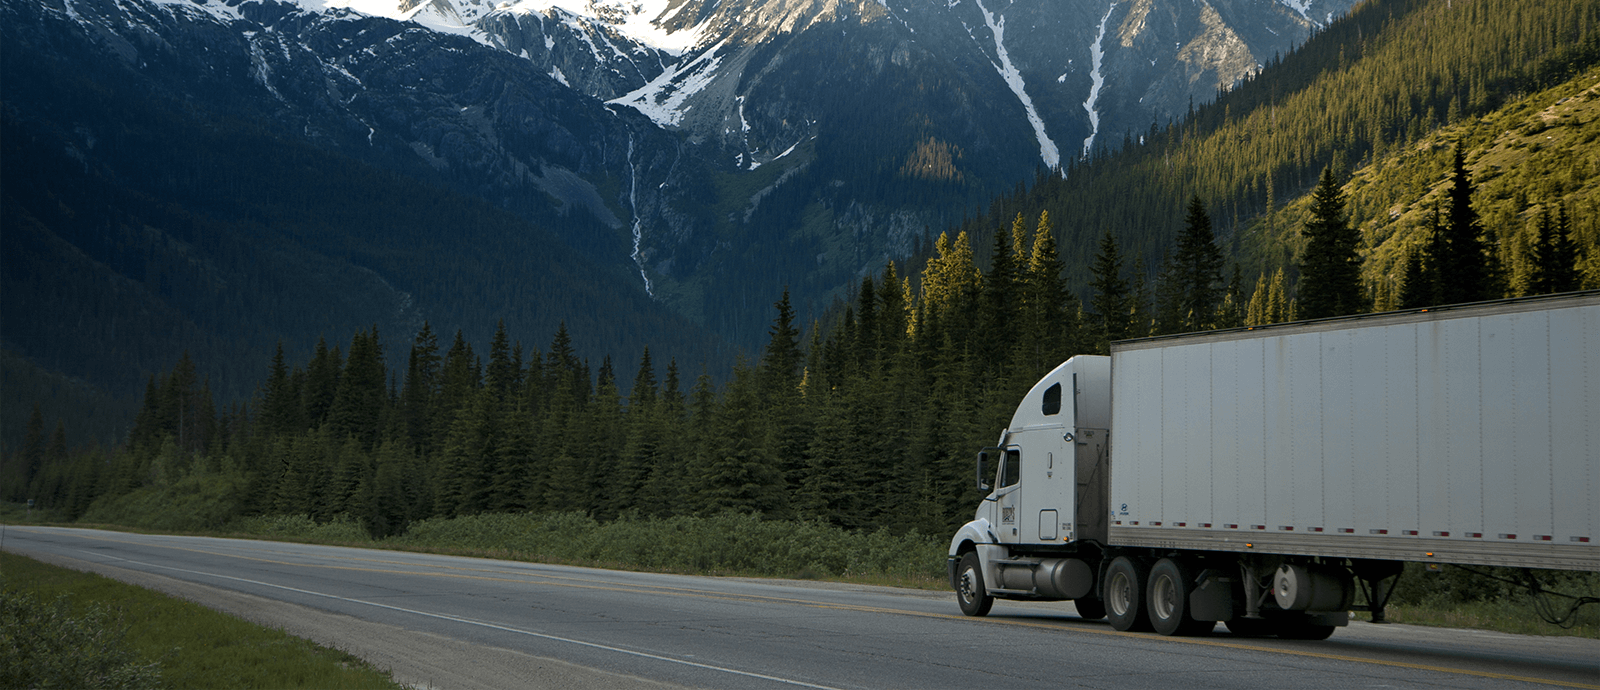 Semi on the road driving through the mountain regions